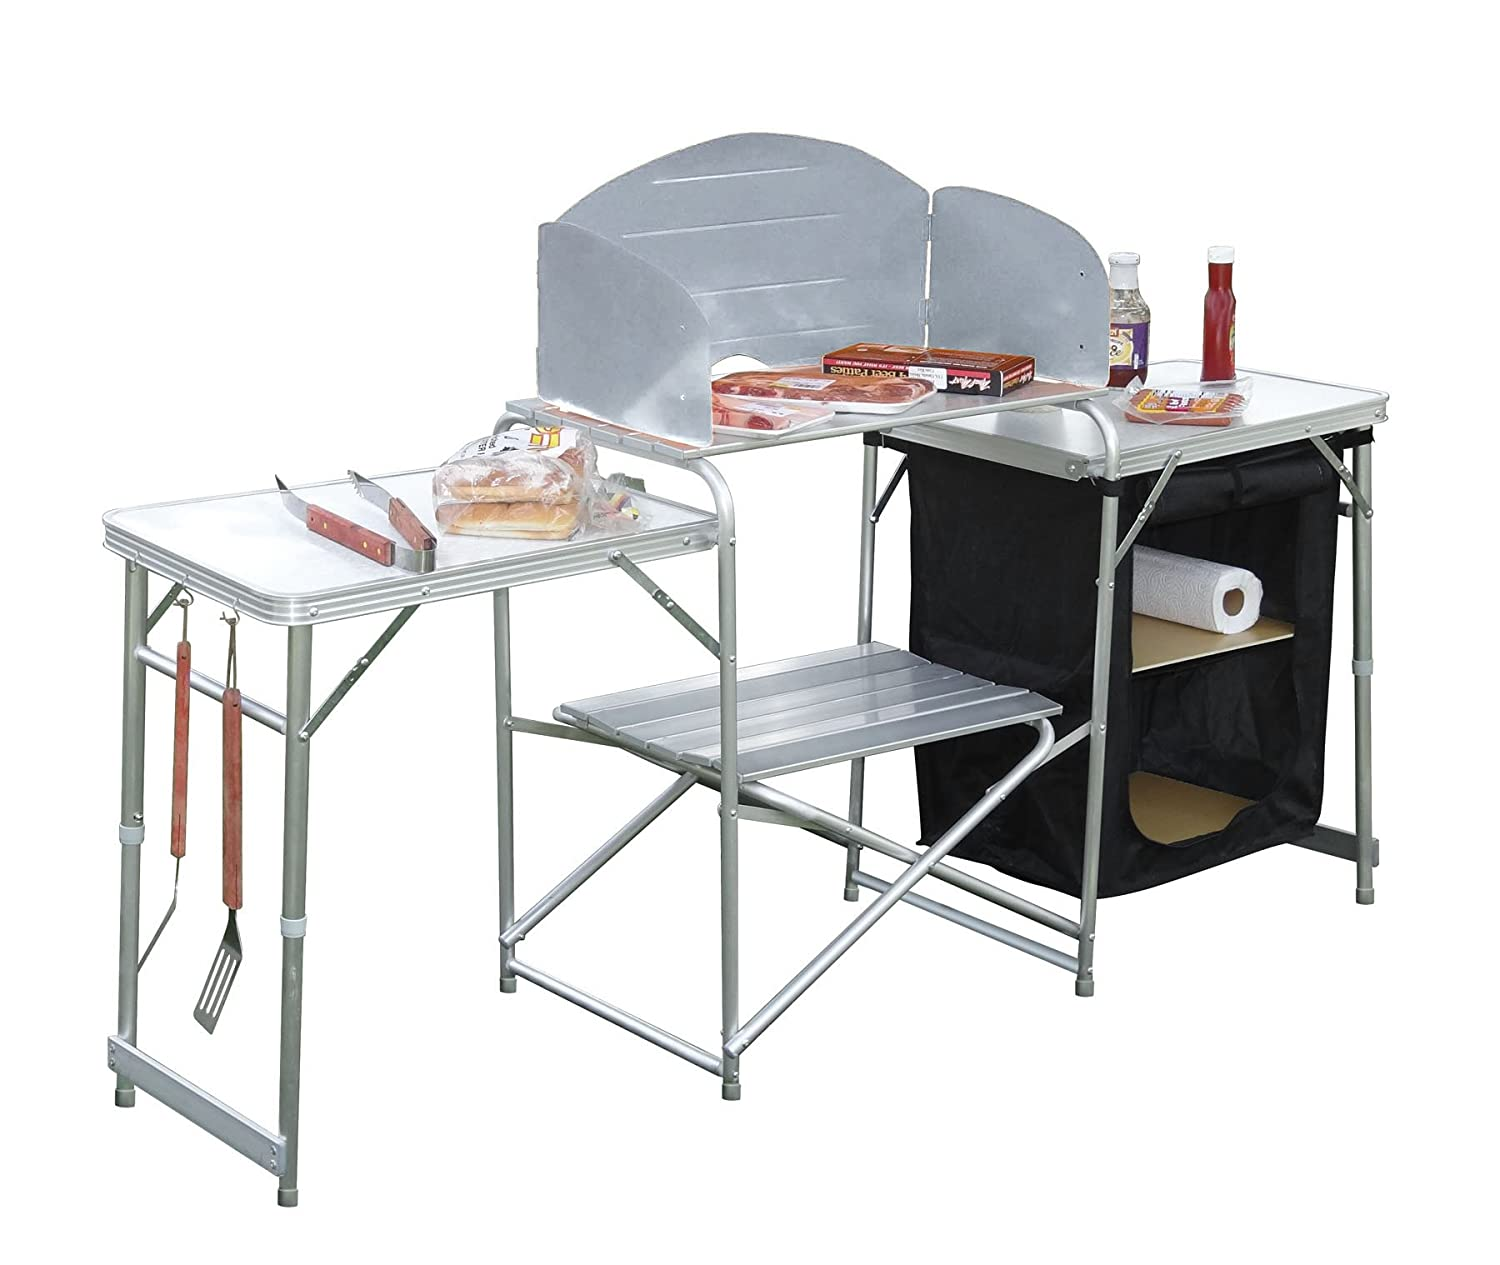 Amazon.com : GigaTent Pack N Go Prep Station : Camping Tables ...